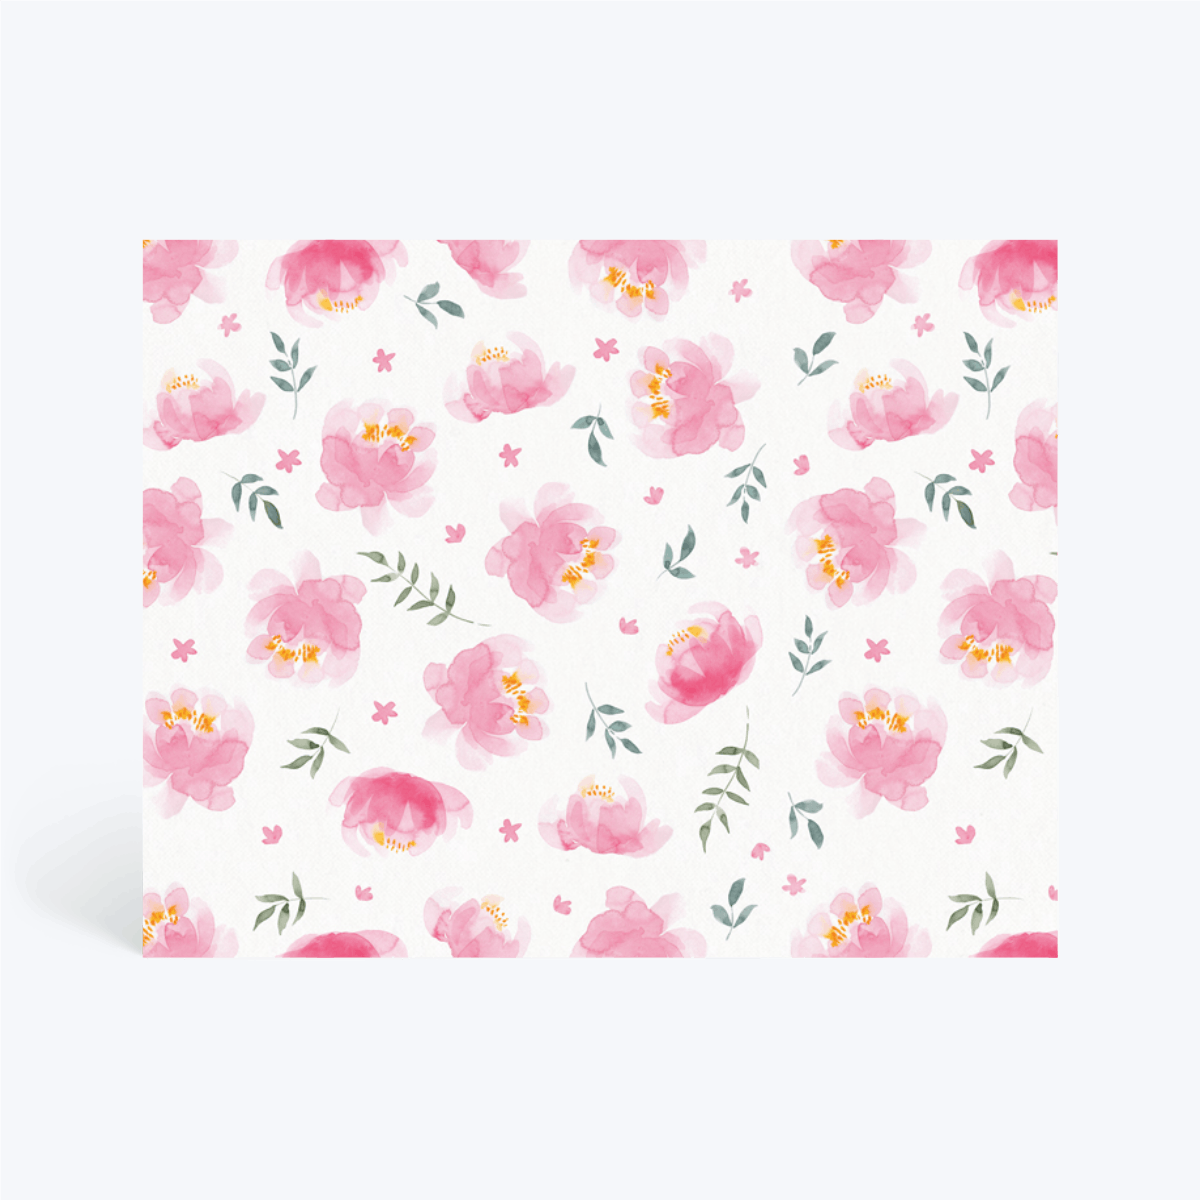 Https%3a%2f%2fwww.papier.com%2fproduct image%2f43790%2f29%2fpeonies 11082 back 1534506020.png?ixlib=rb 1.1